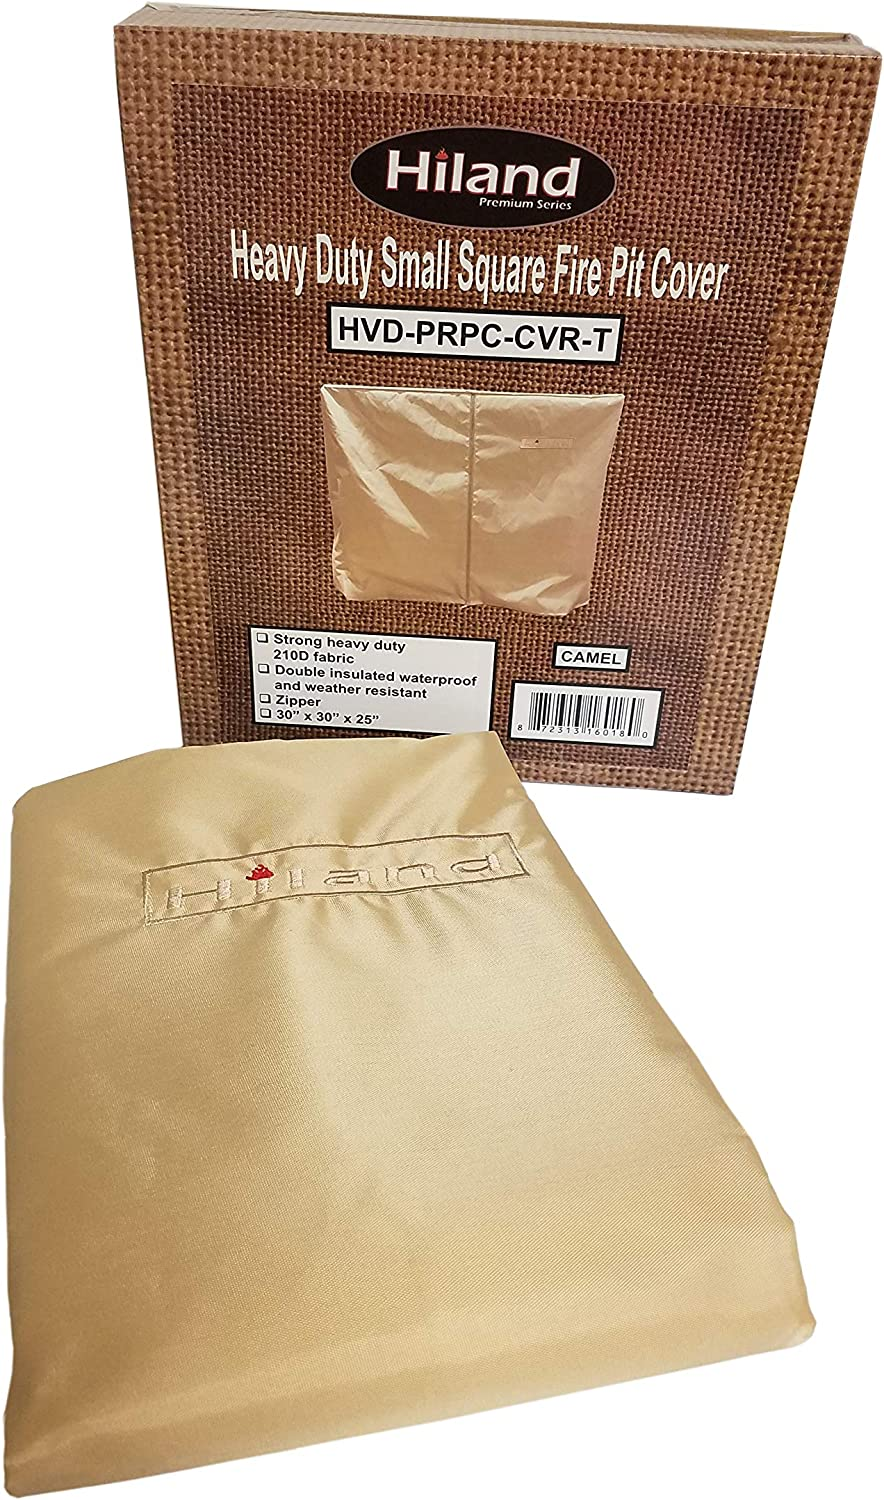 Round Hiland HVD-RFP-CVR Heavy Duty Waterproof Two Tiered Fire Pit Cover-59 x 39 x 24-Tan